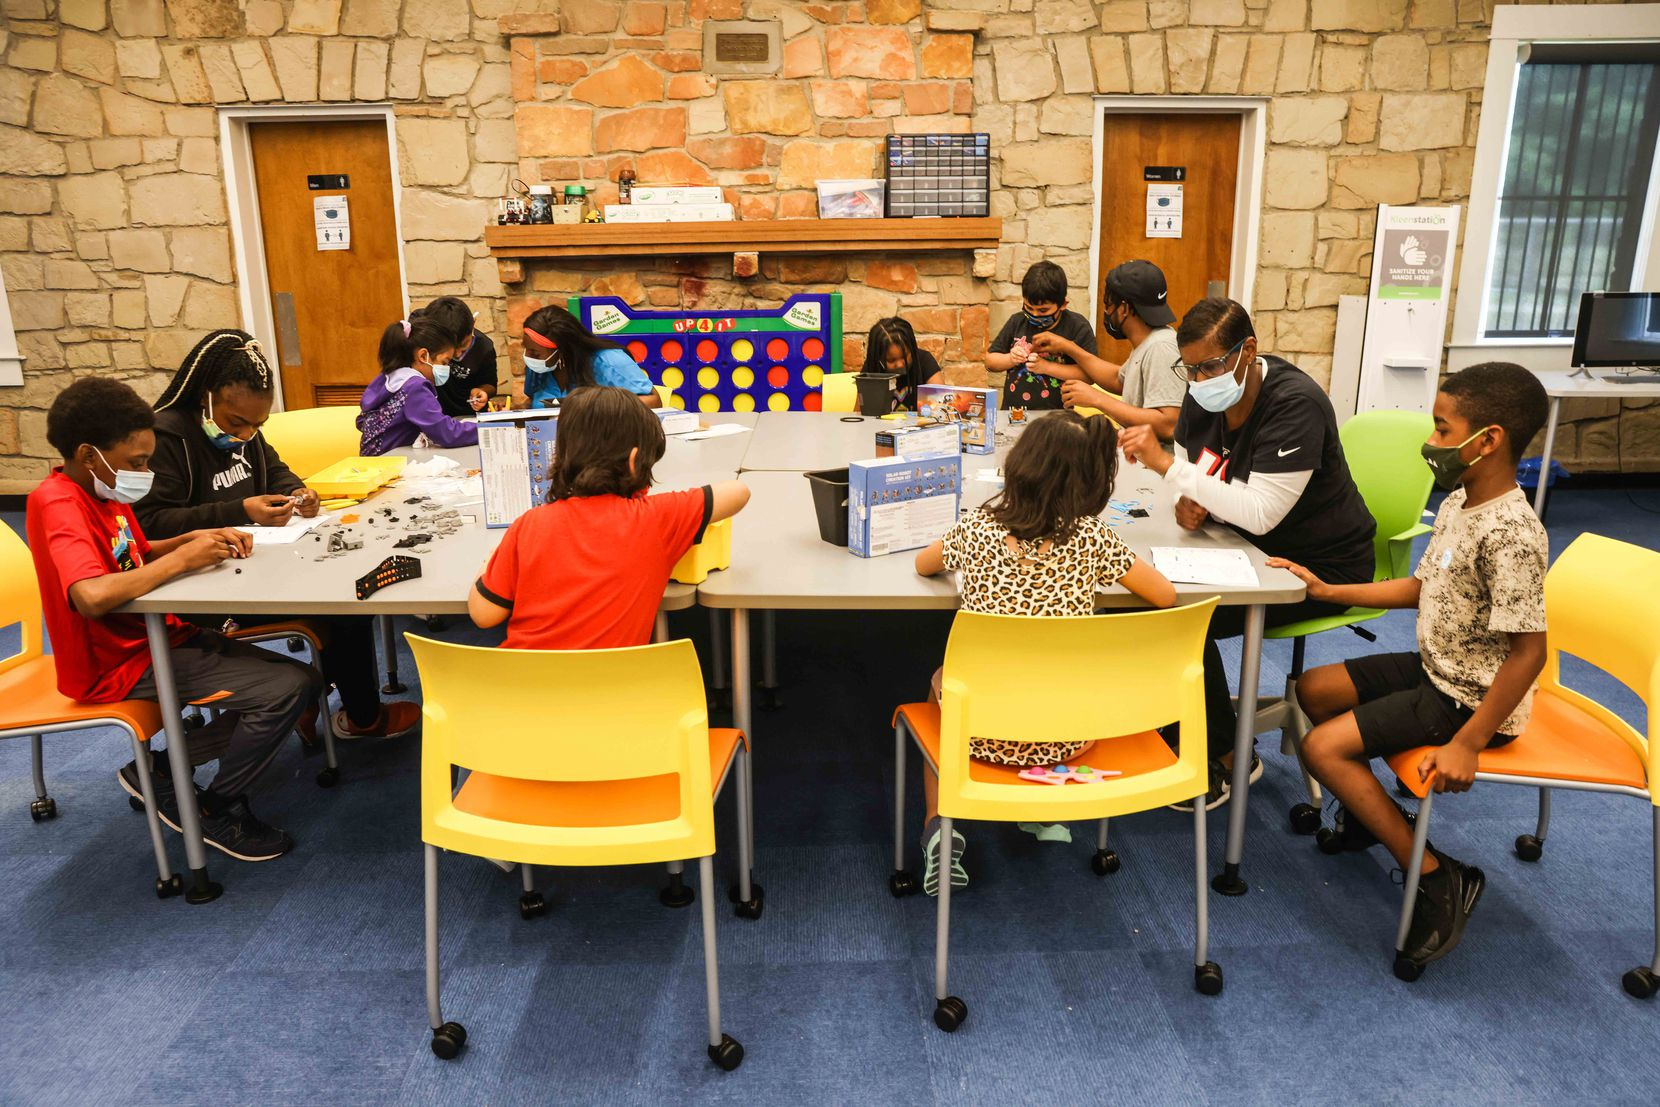 Kids work in groups on Solar Robot Creation Kits as part of the Children's Technology Program at the Juanita J. Craft Recreation Center Annex in Dallas on Thursday, June 10, 2021. (Lola Gomez/The Dallas Morning News)